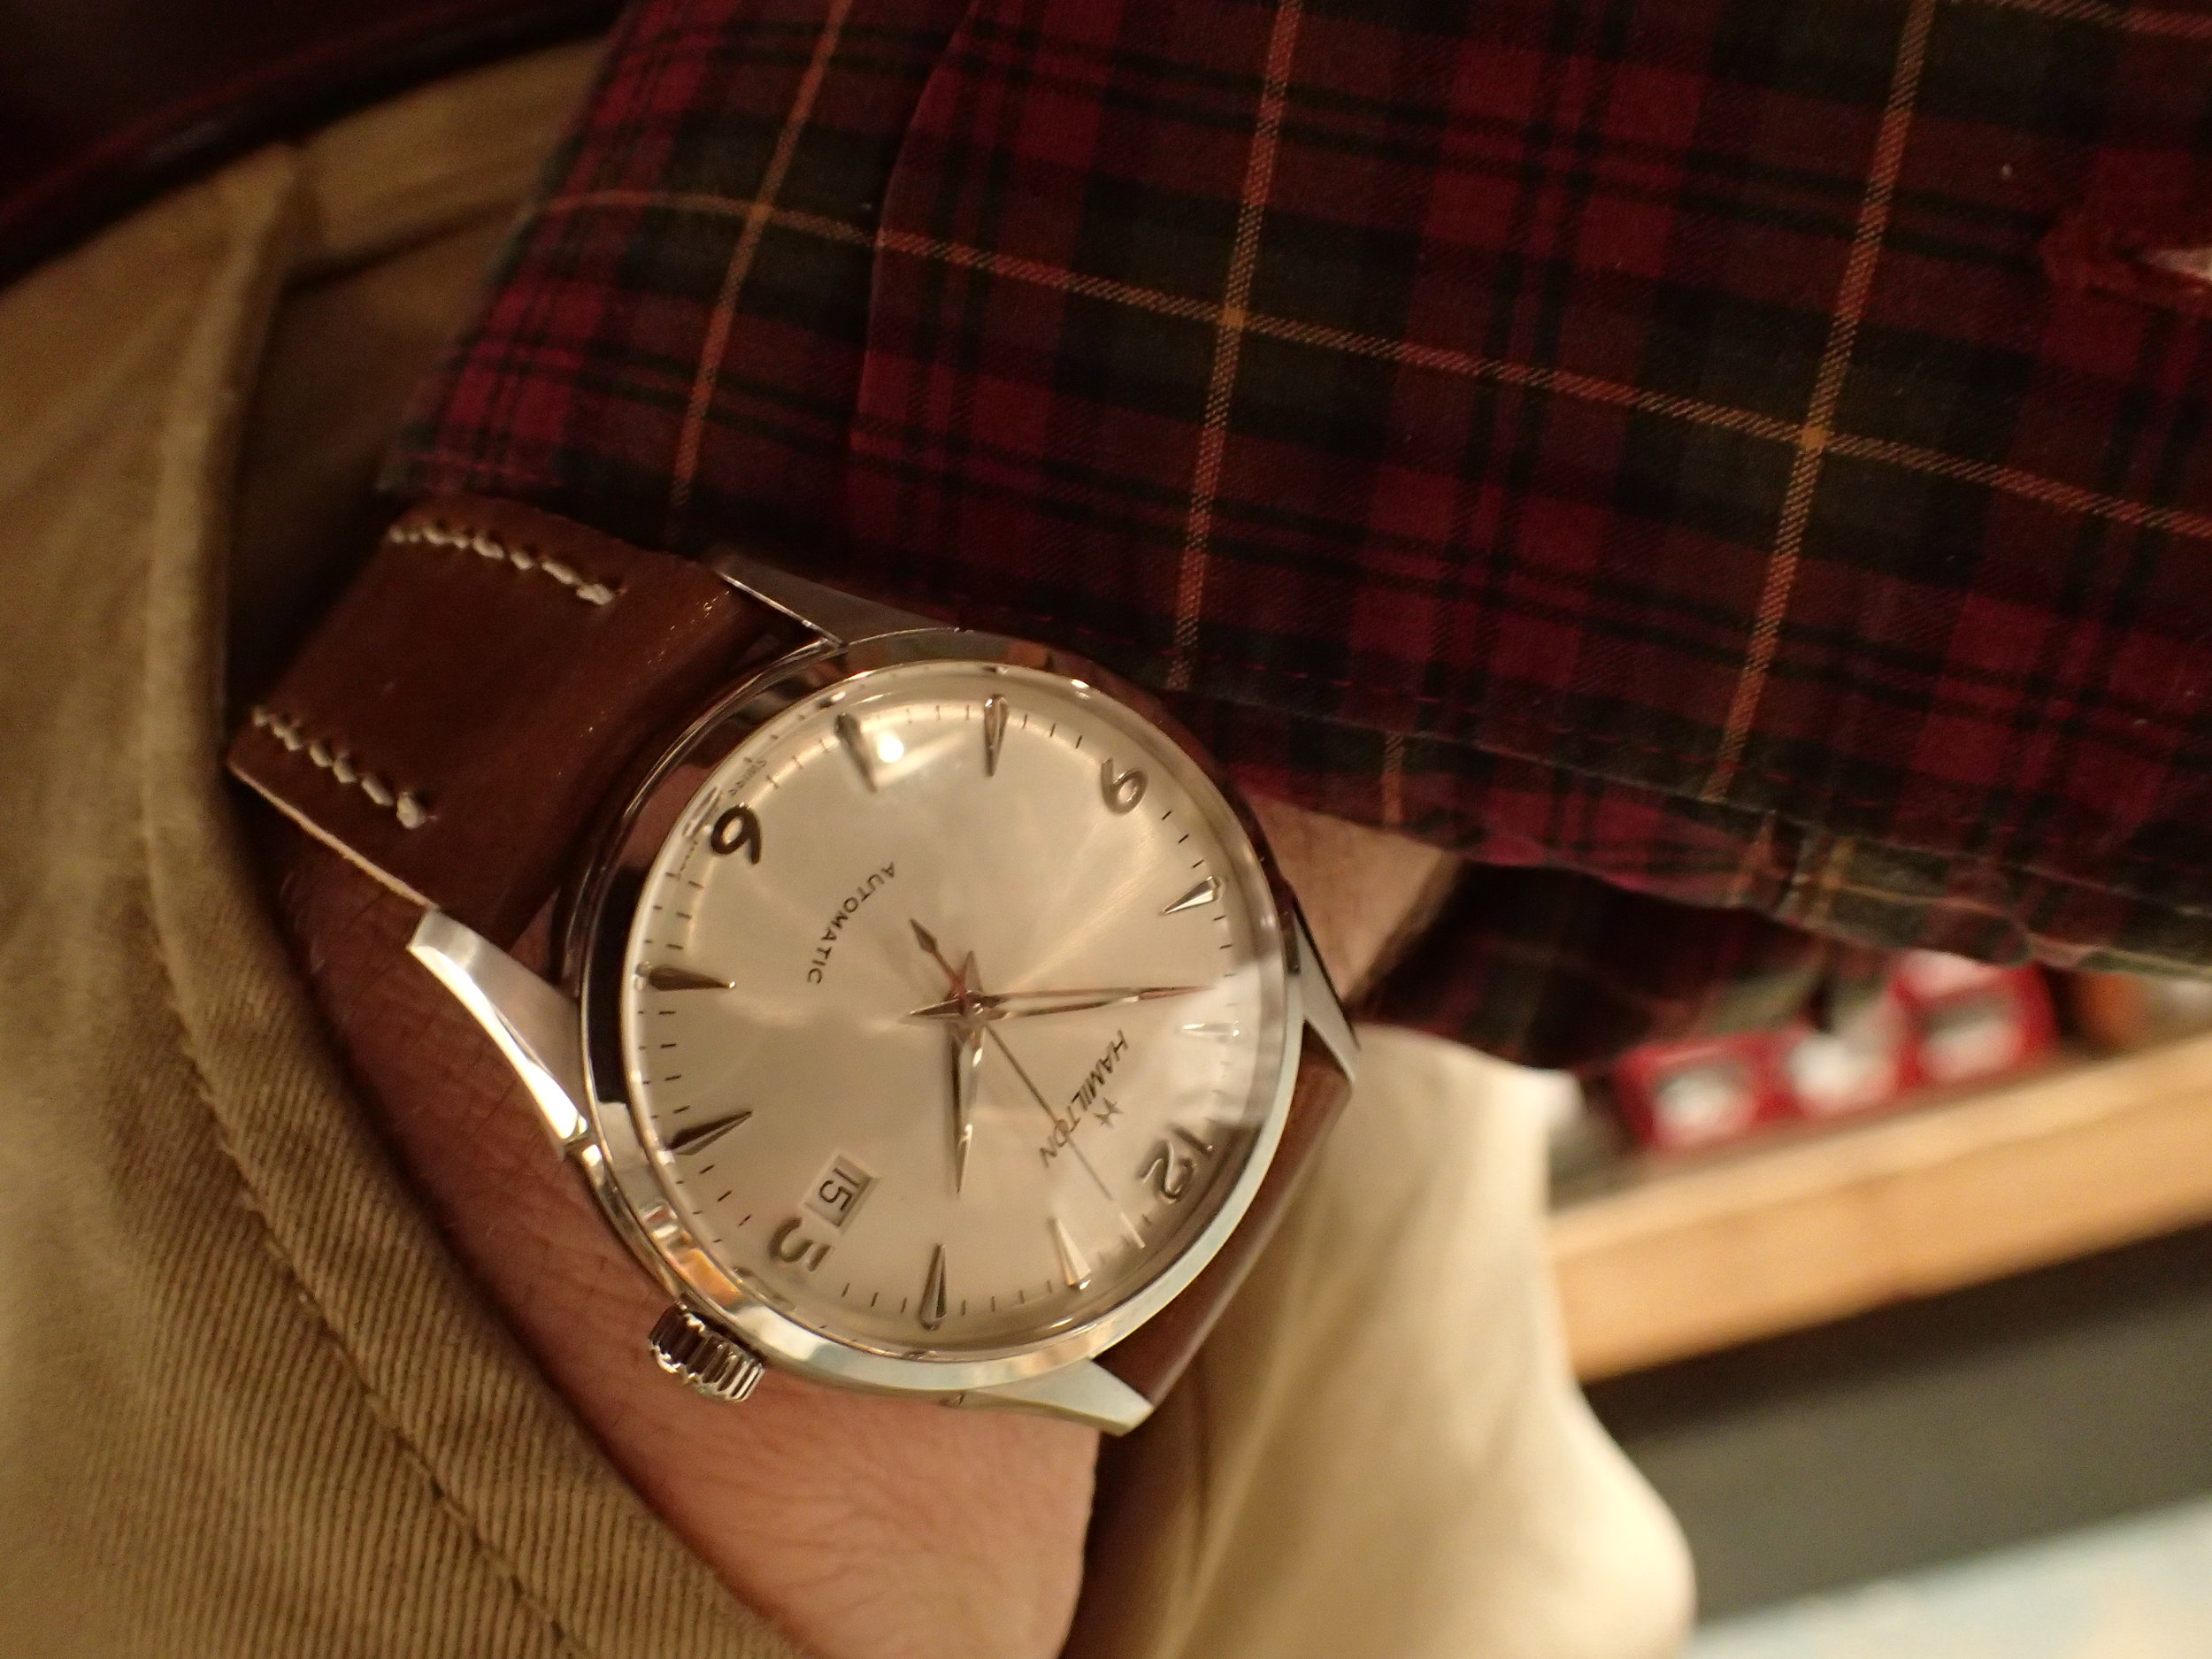 The Thin-O-Matic 38 mm, ref H384150.